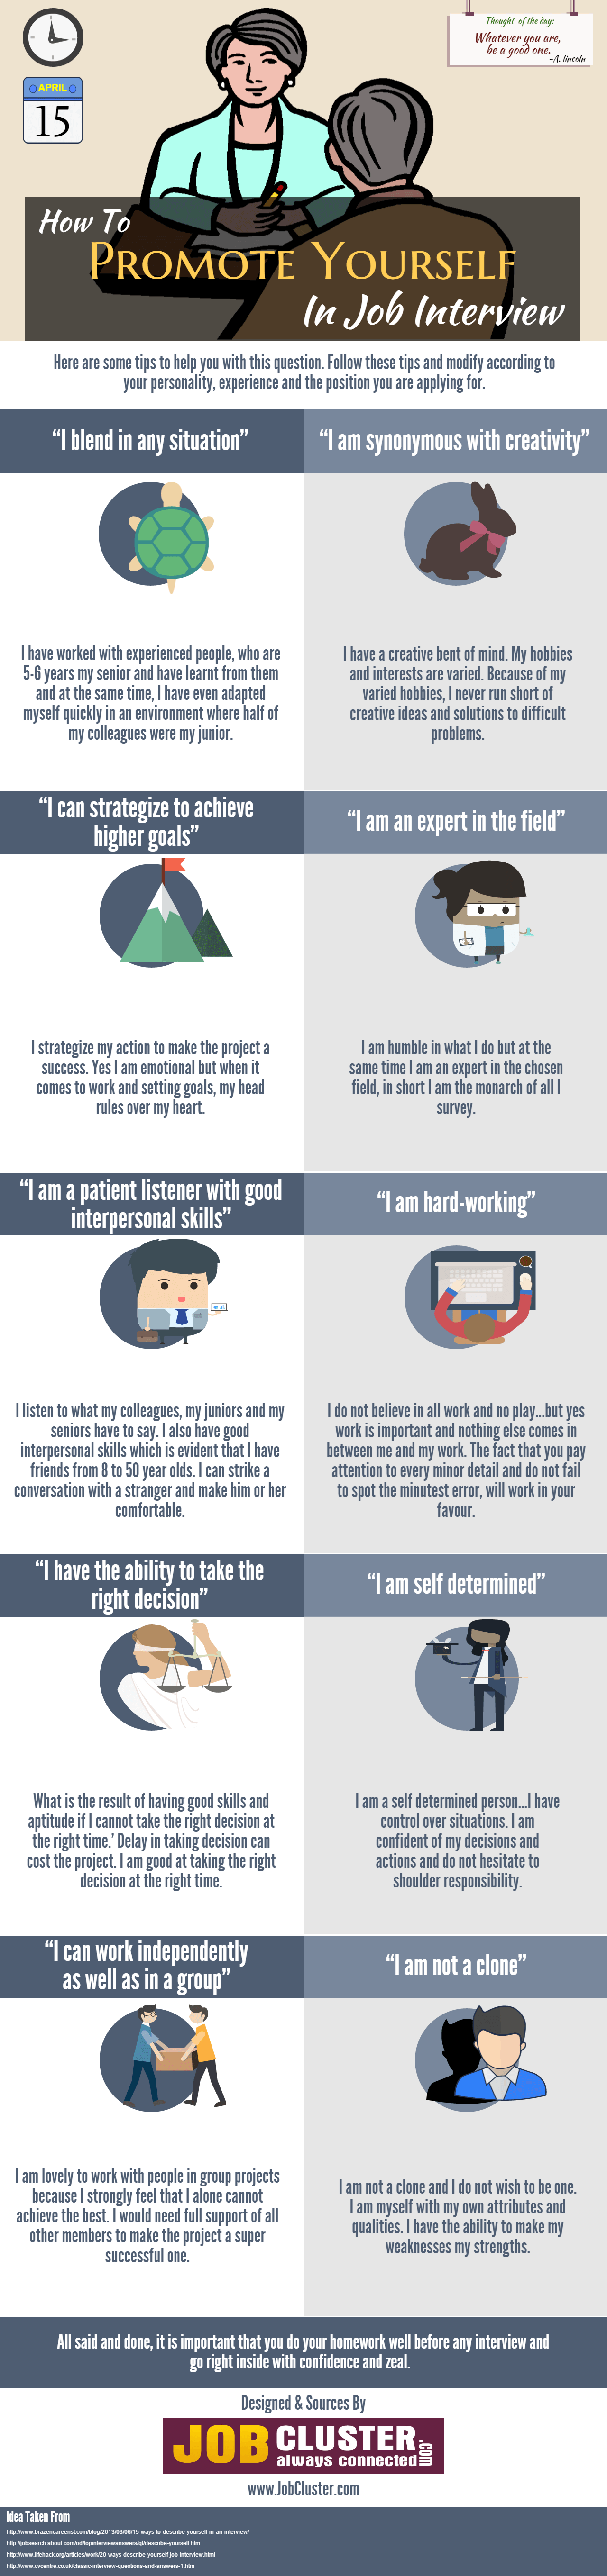 how to promote yourself in job interview infographic jobcluster